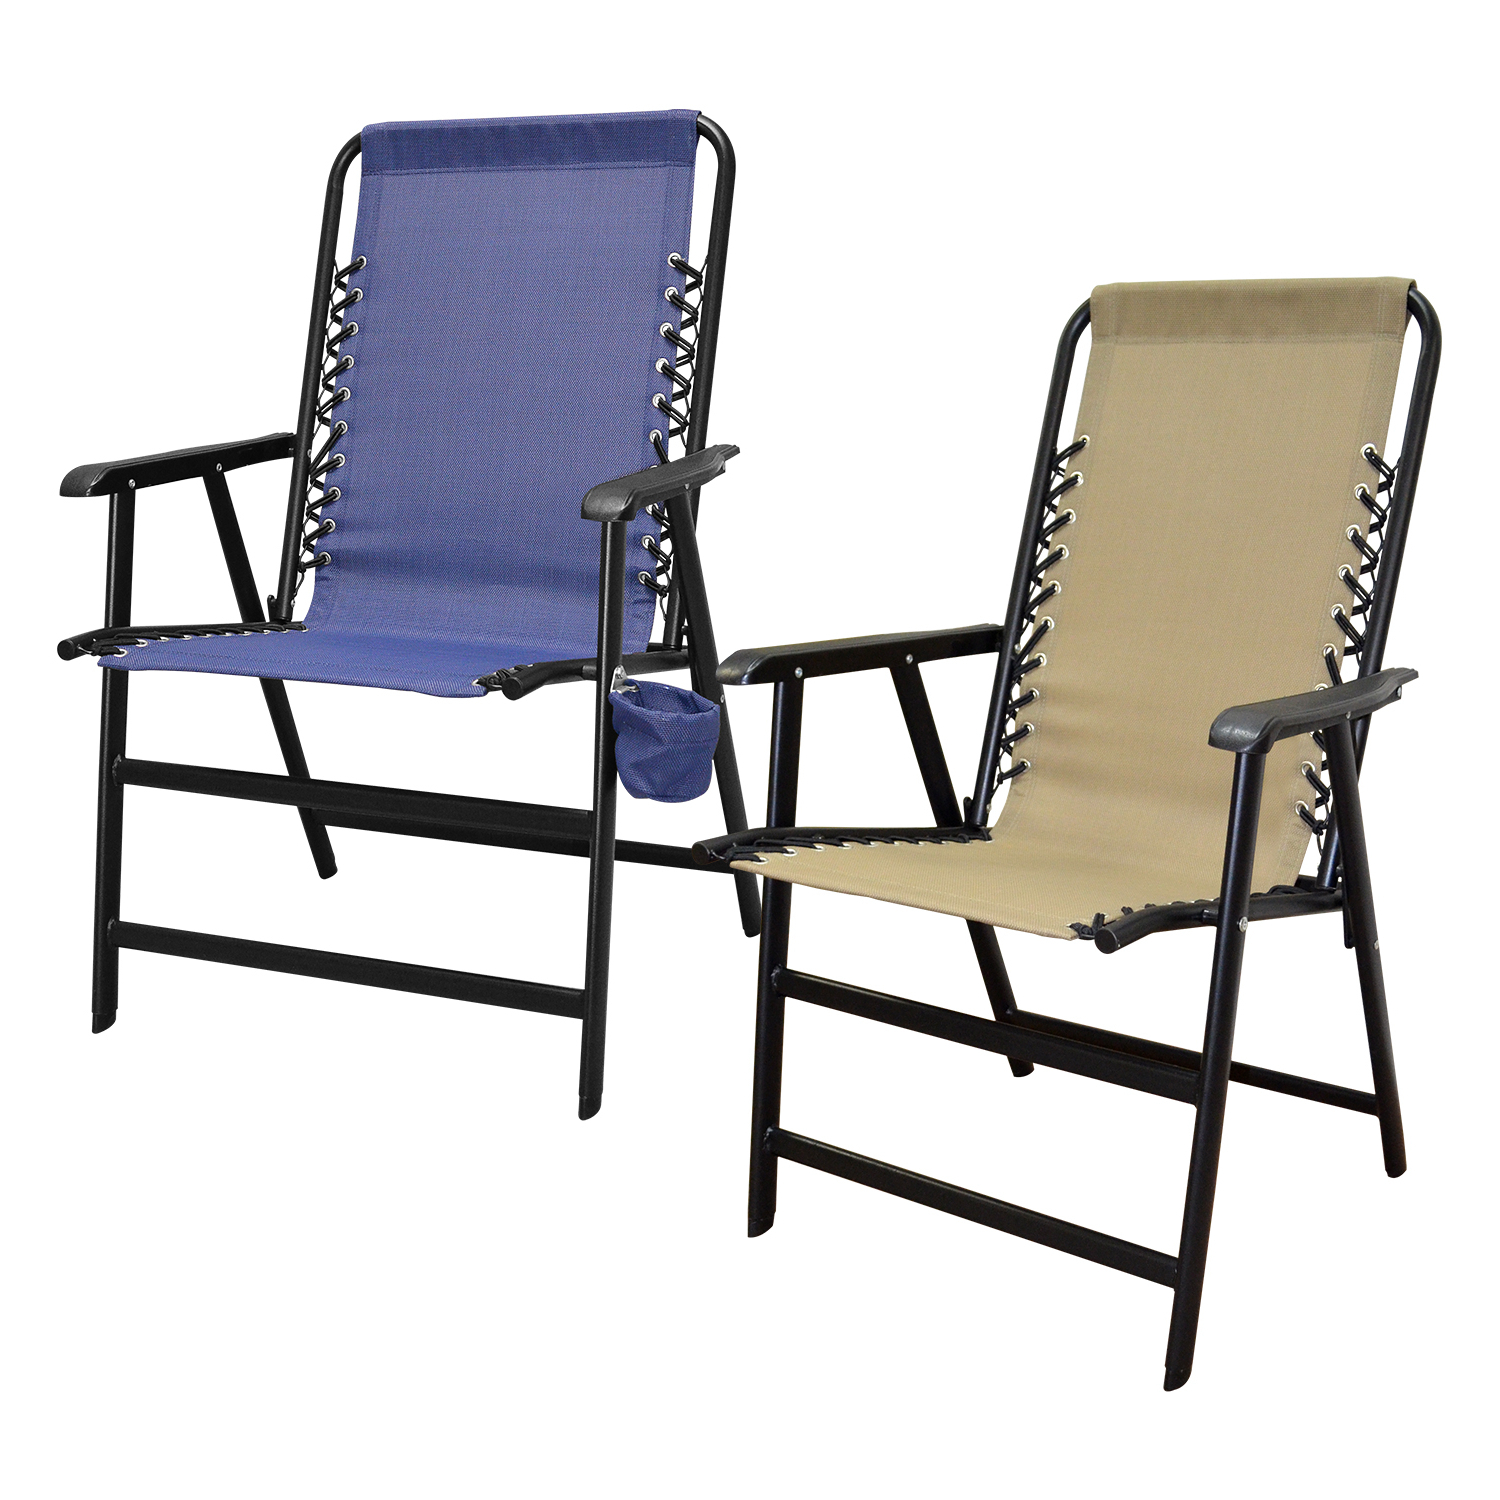 Infinity Suspension Folding Chair In Current Oversized Extra Large Chairs With Canopy And Tray (View 9 of 25)